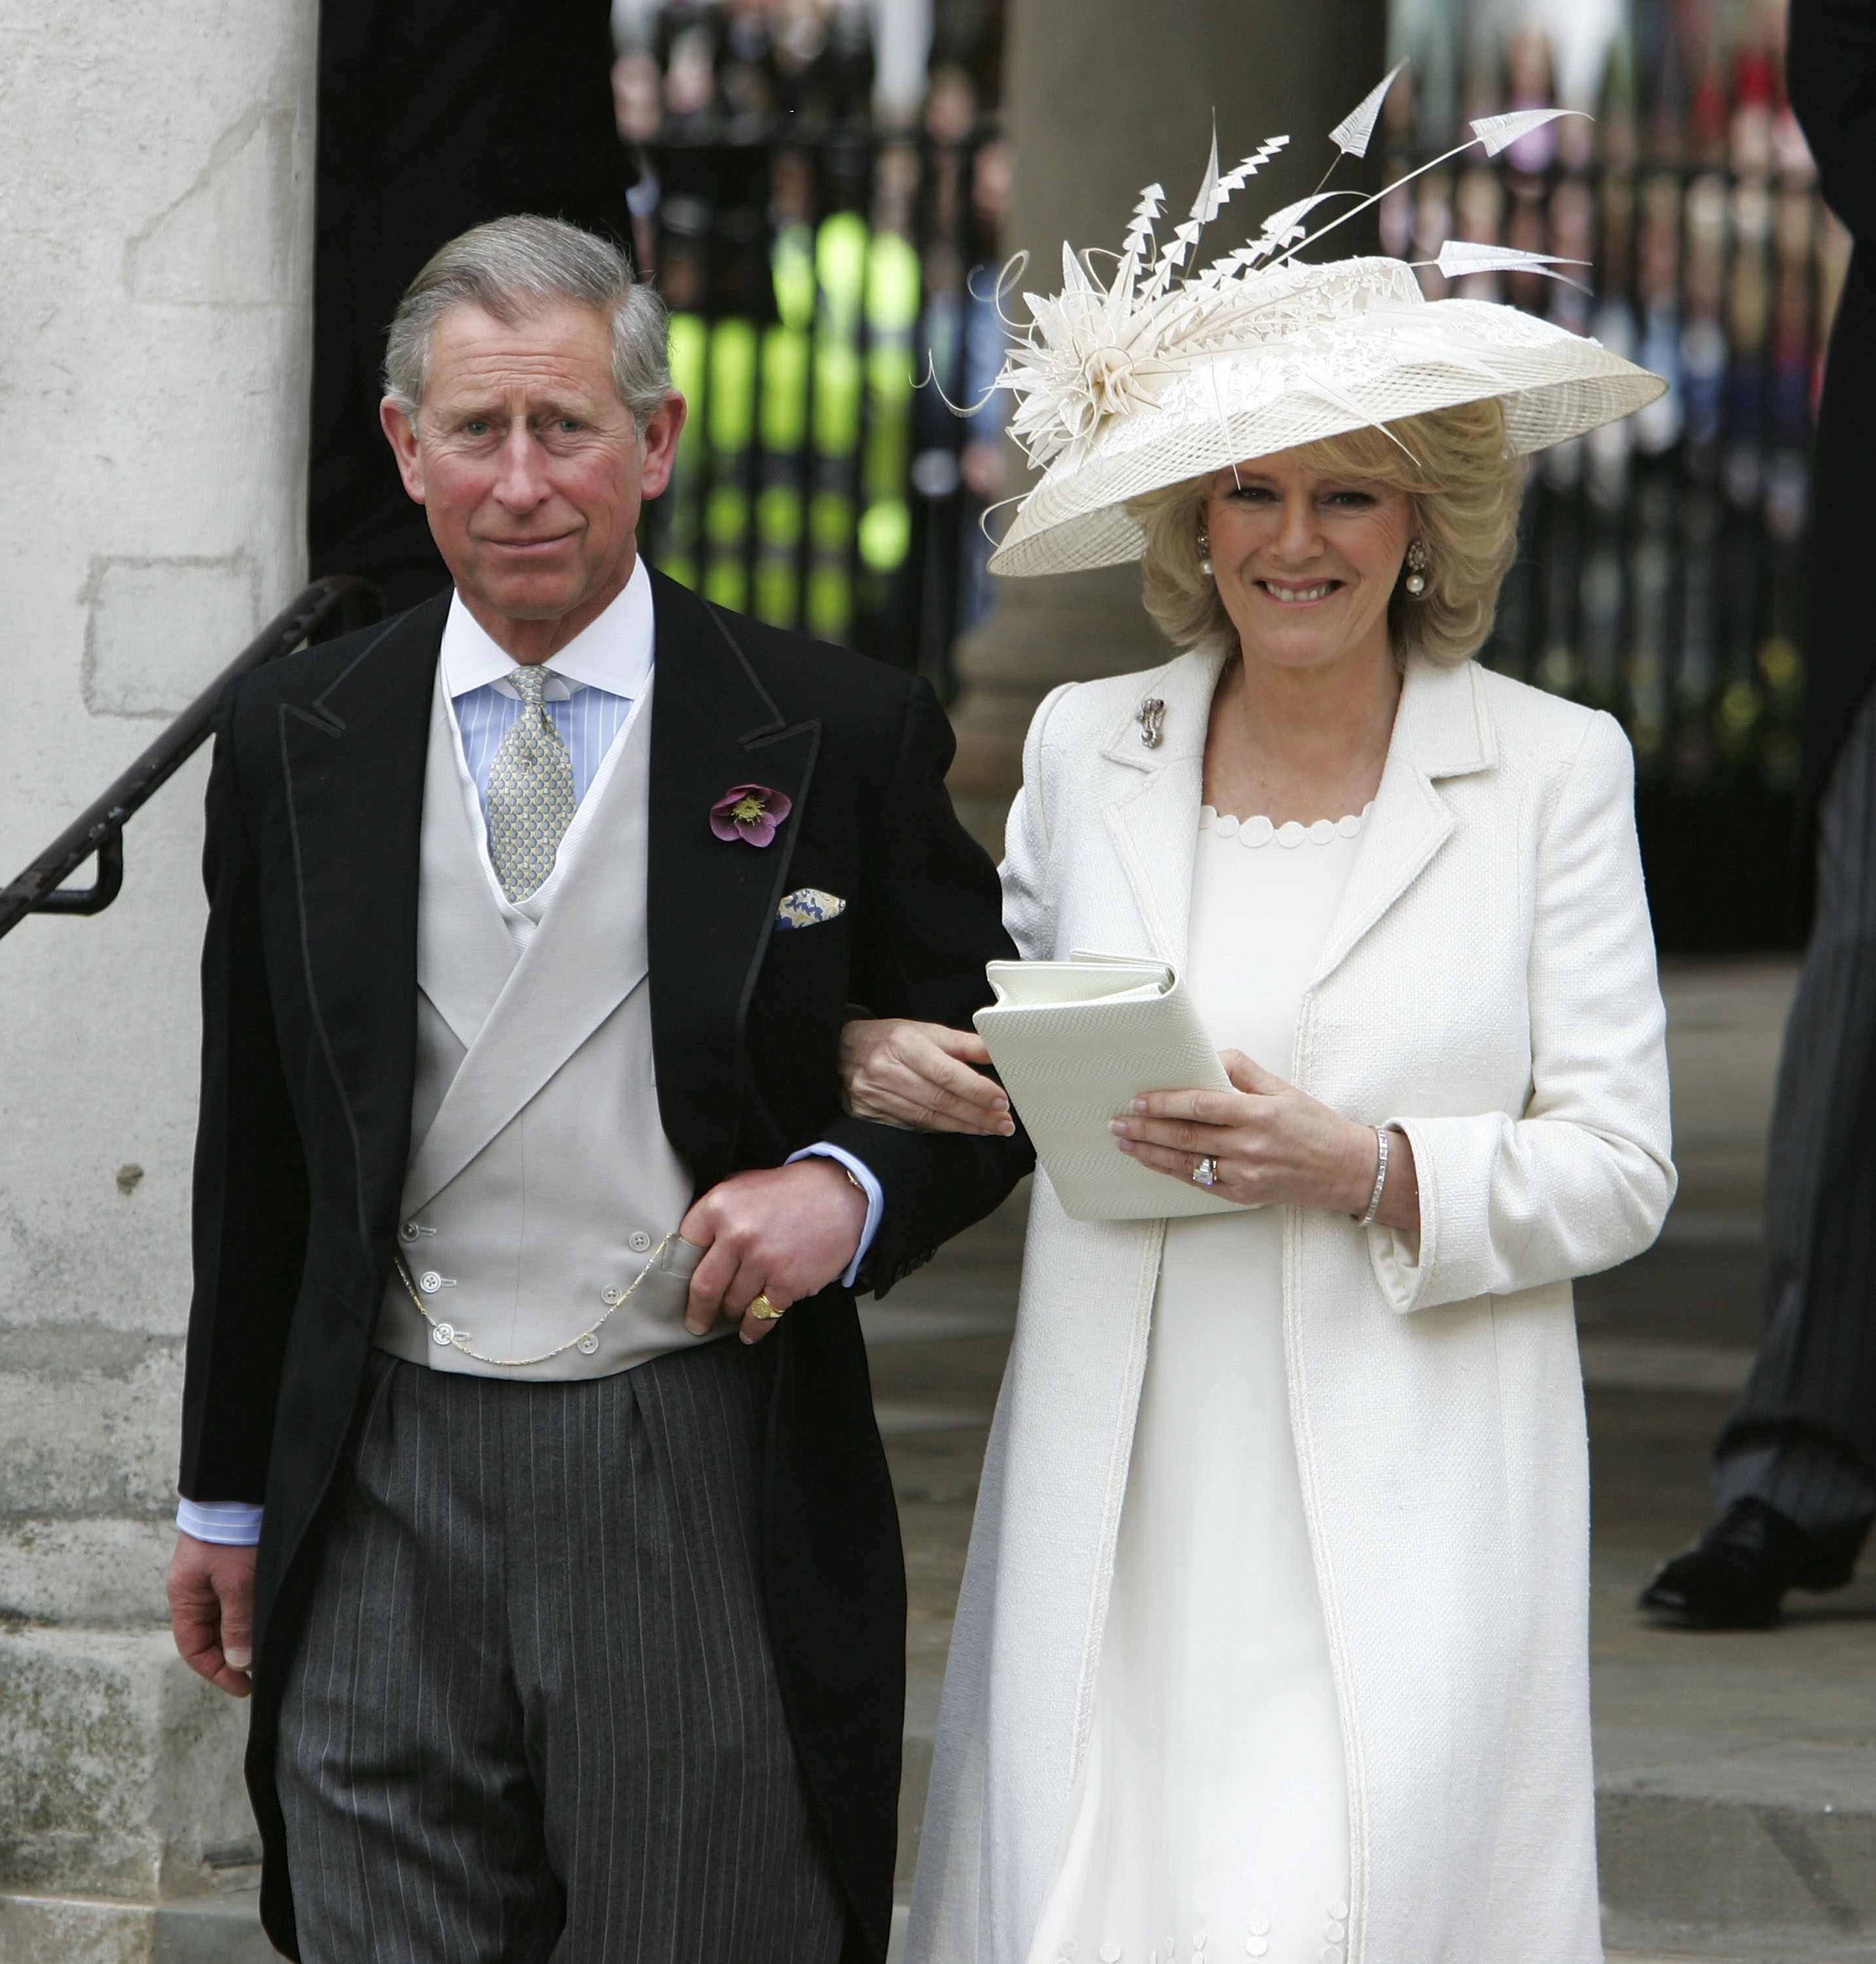 Prince Charles, the Prince of Wales, and his wife Camilla, the Duchess of Cornwall, depart the Civil Ceremony where they were legally married, at The Guildhall, Windsor on April 9, 2005 in Berkshire, England. (Photo by Georges De Keerle/Getty Images)